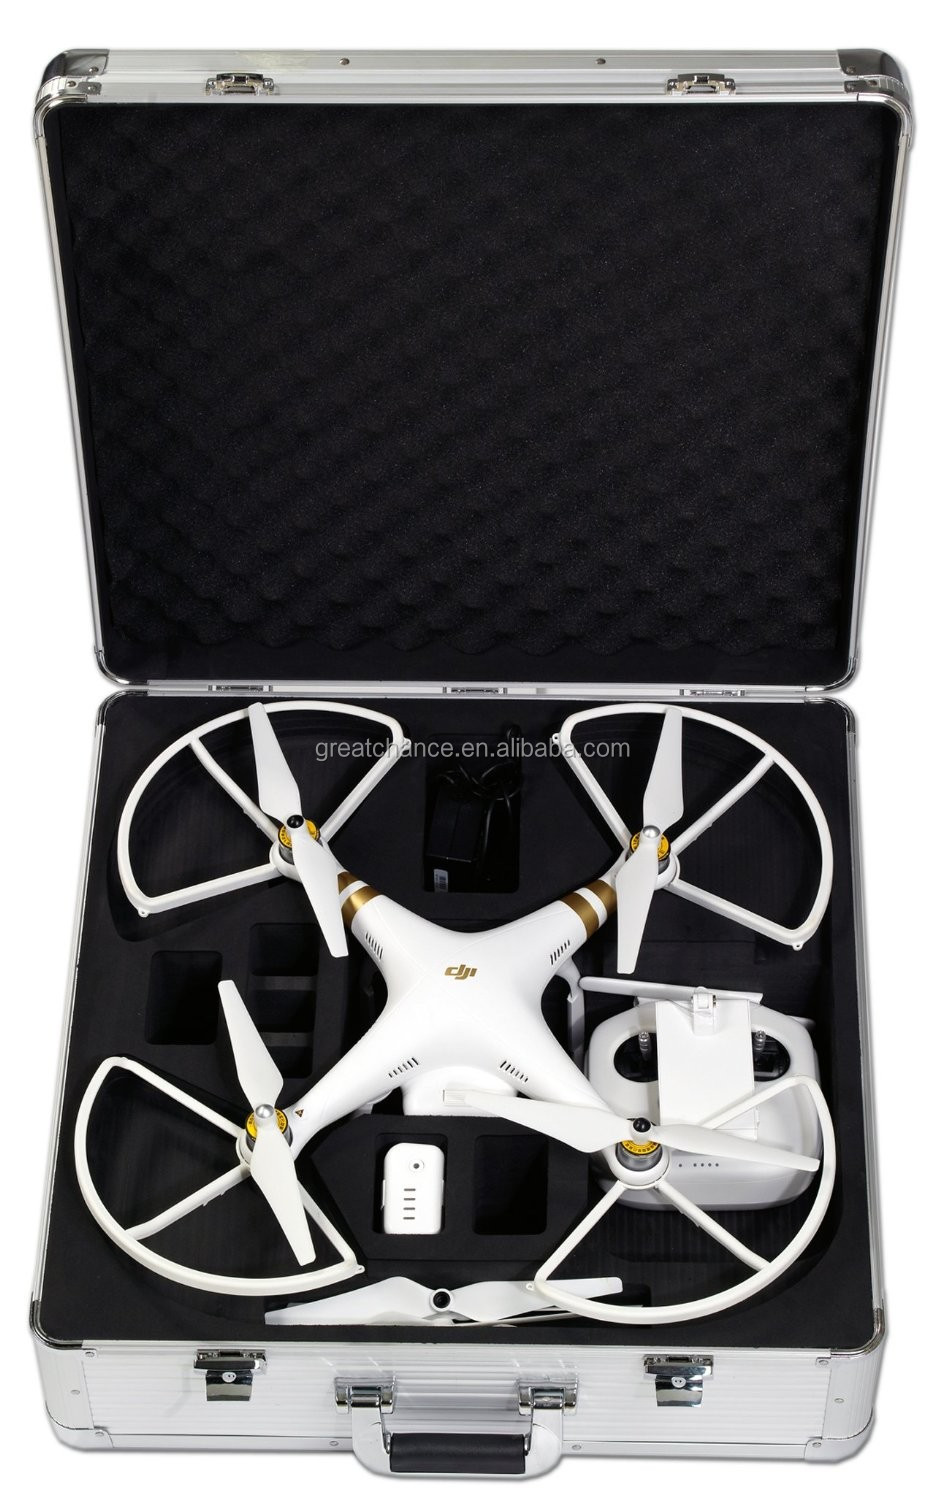 NEW DJI Phantom 3 HardCase designed to fit the Phantom 3 Professional, Advanced, and Standard Edition Drone